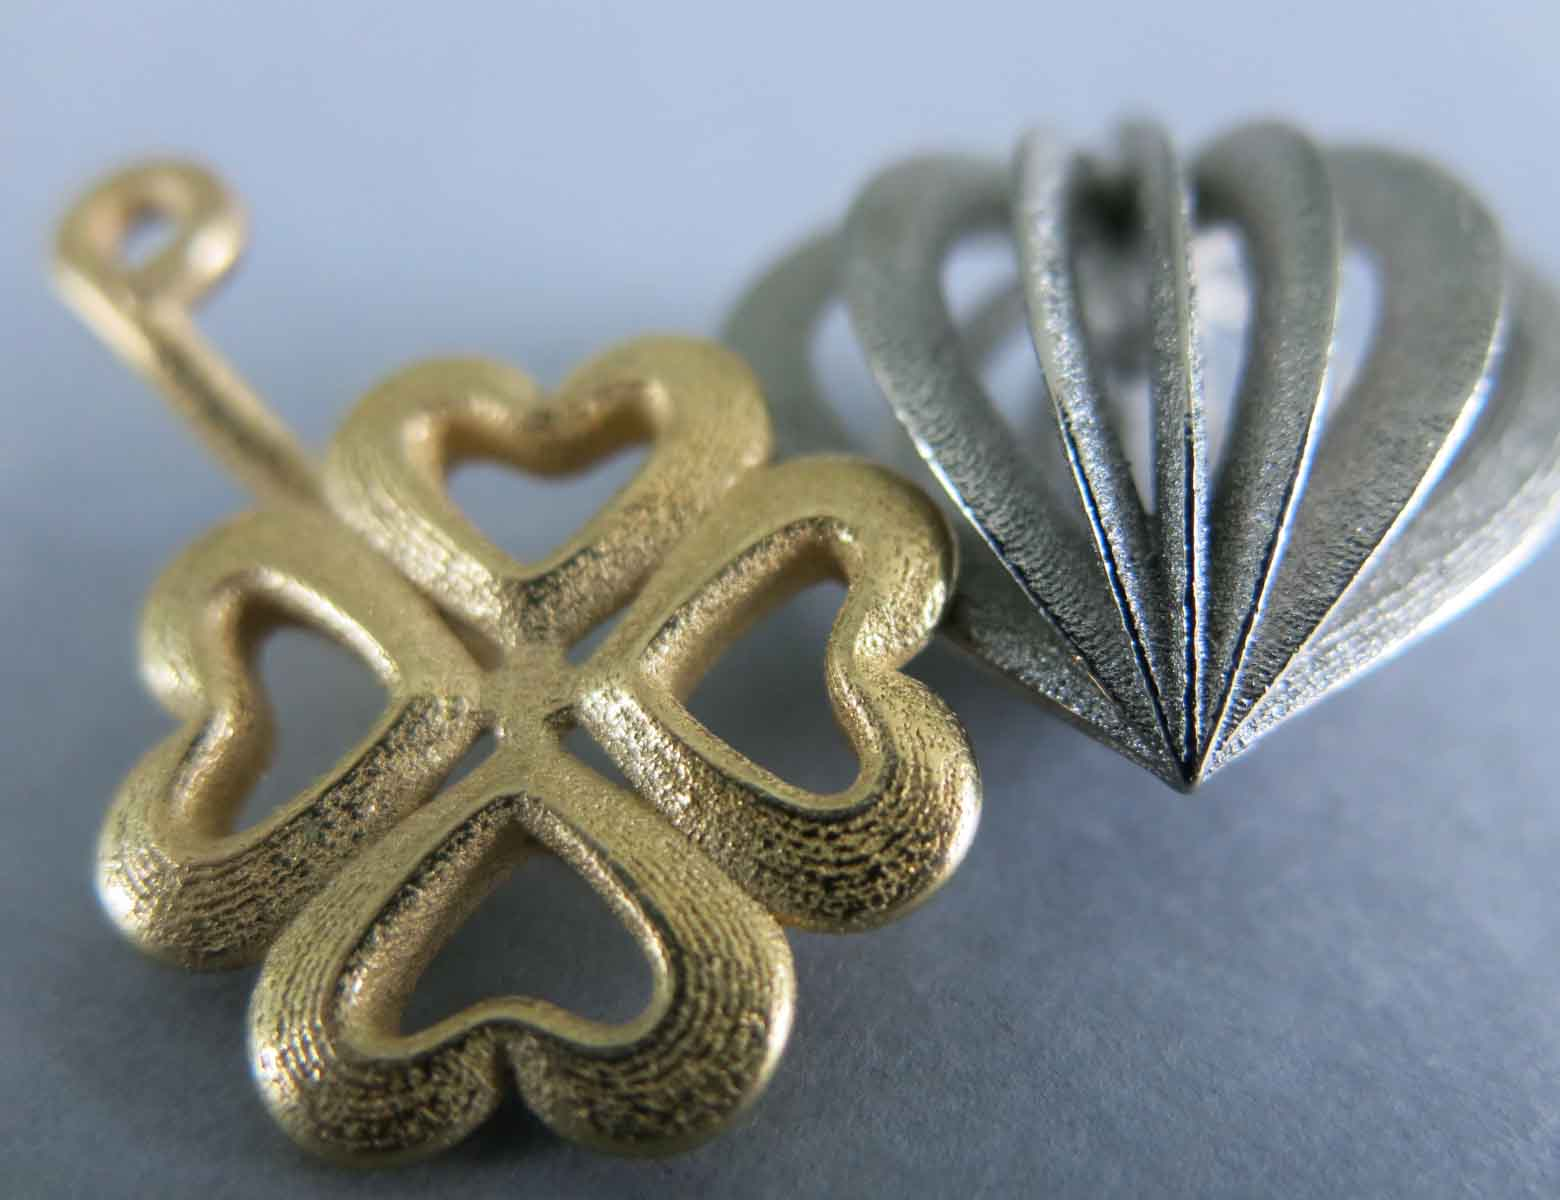 3D printing with Binder Jetting Stainless Steel